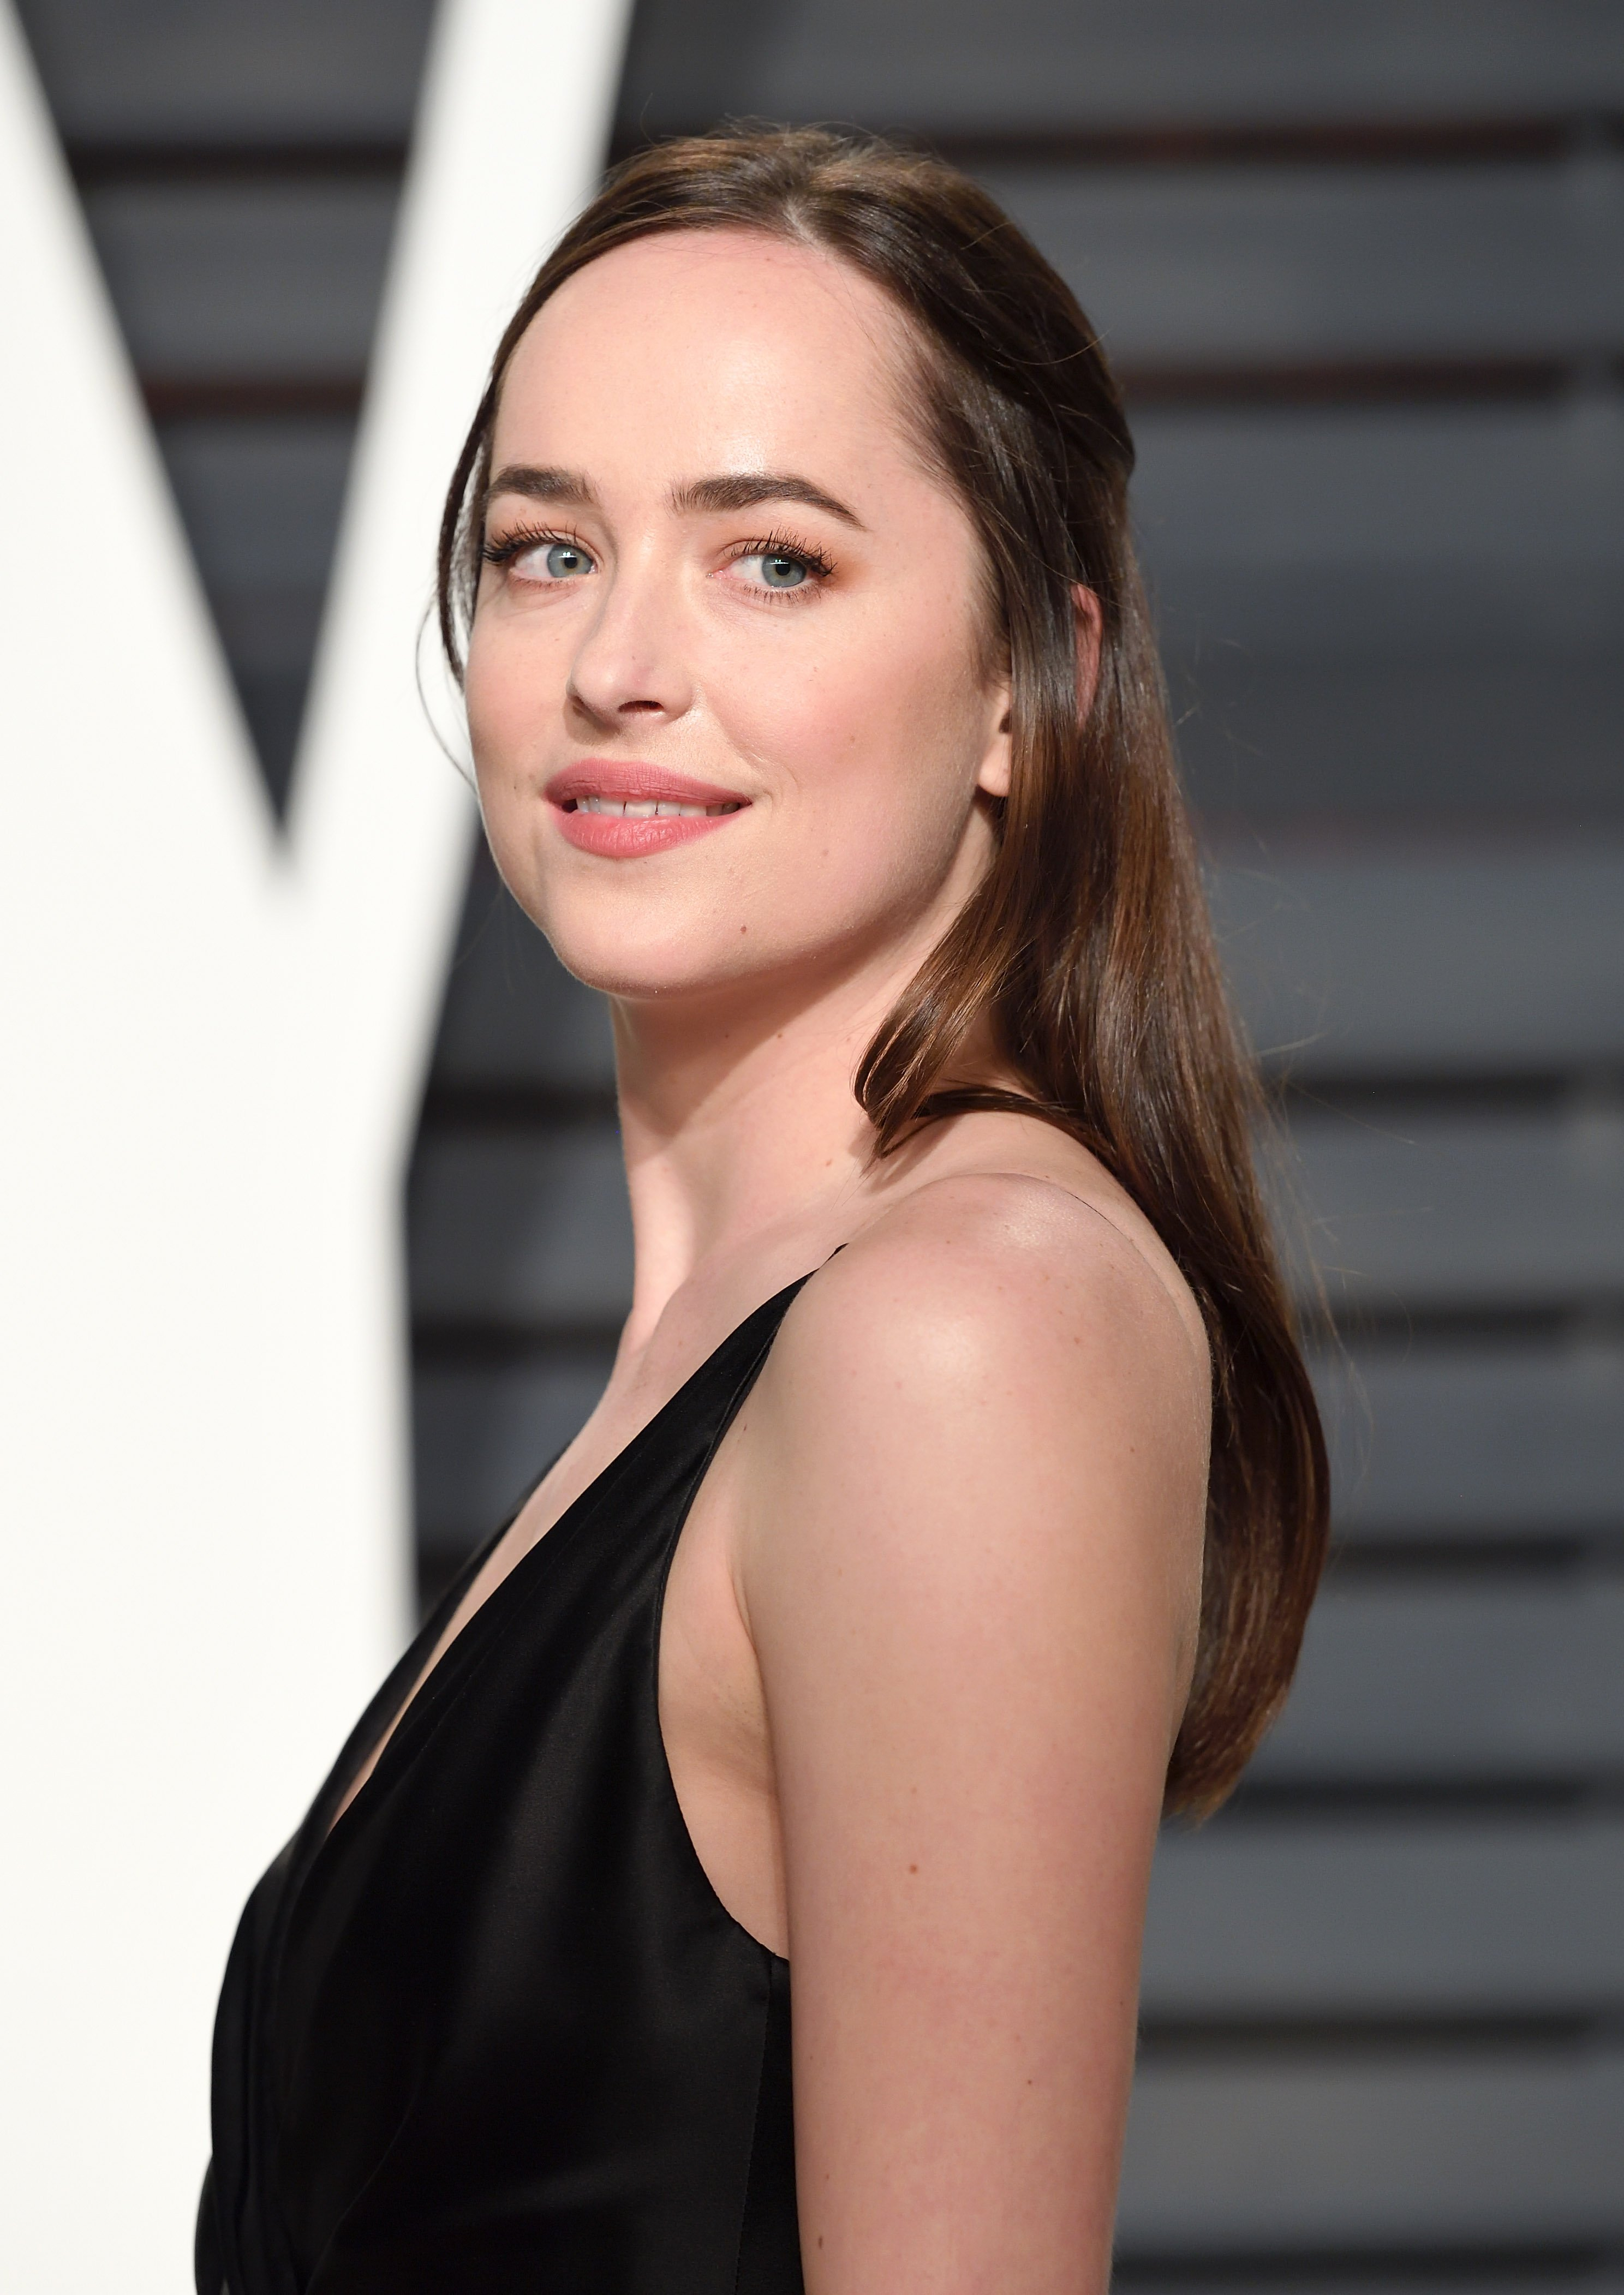 Dakota Johnson arrives for the Vanity Fair Oscar Party in 2017. | Source: Getty Images